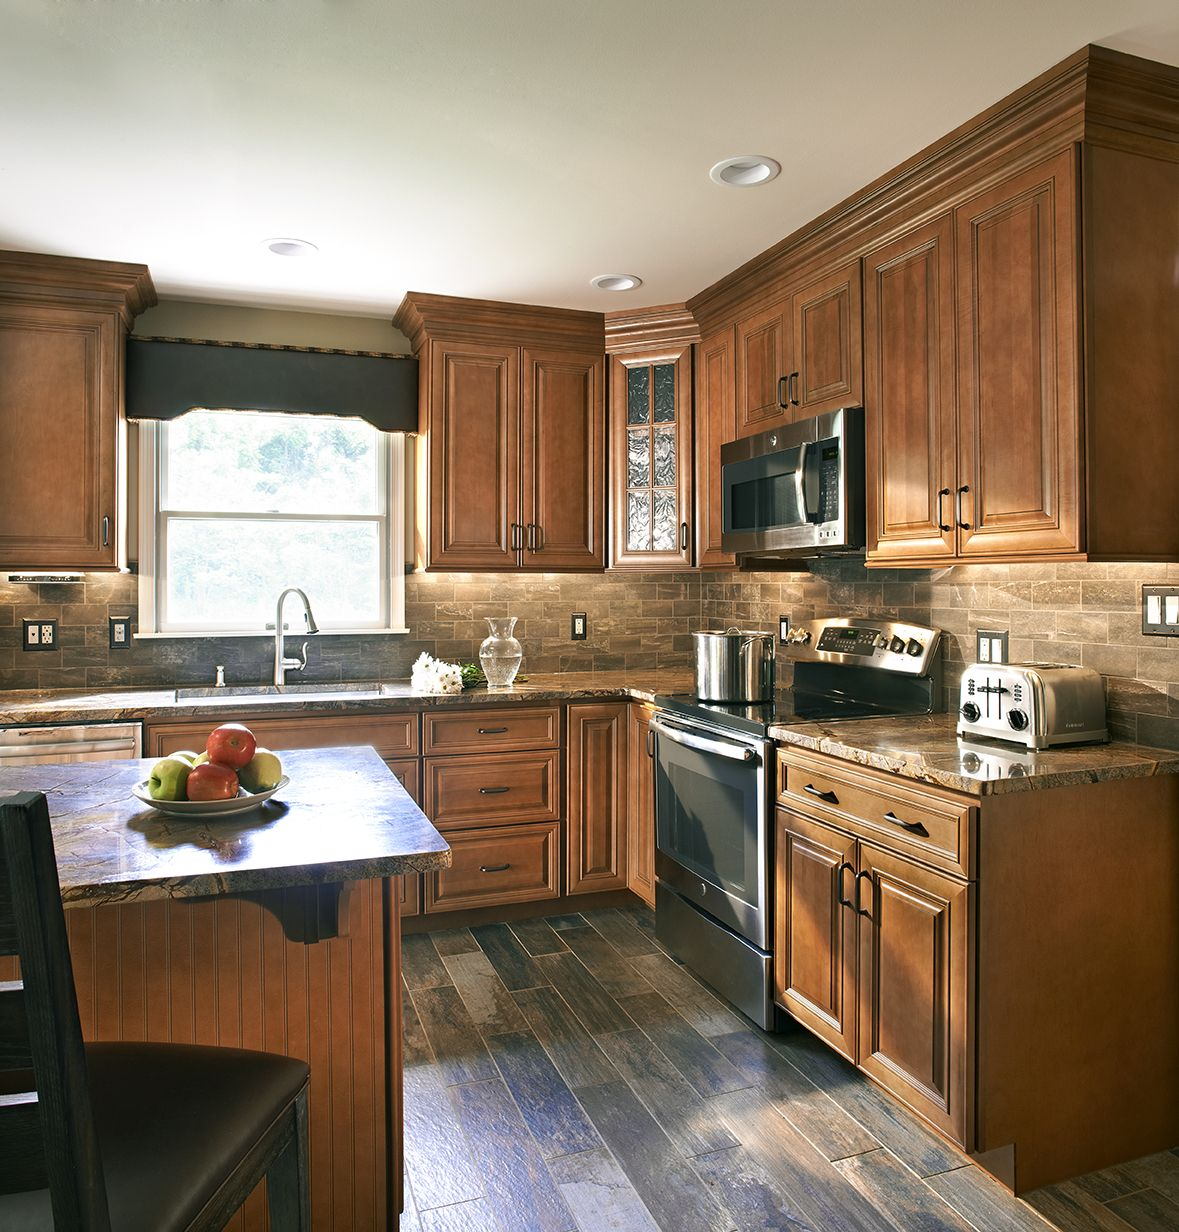 WOLF Classic Cabinets In Hudson Heritage Brown With